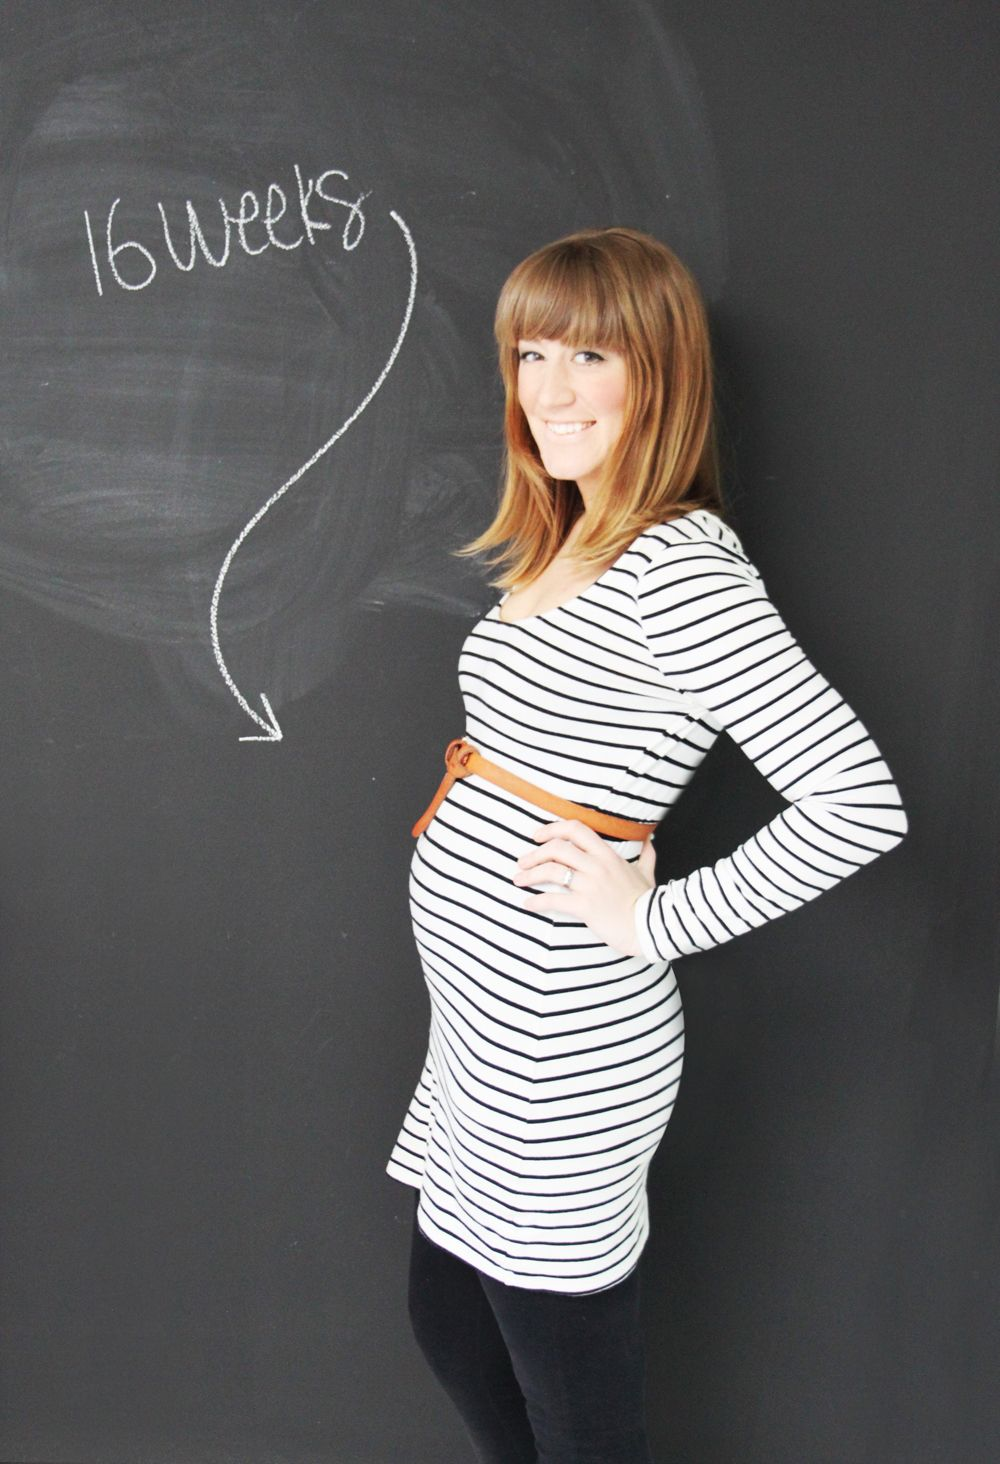 My tummy at 16 weeks pregnant, 16 week pregnant belly, pregnancy belly  photo ideas, maternity shoot #maternityshoot